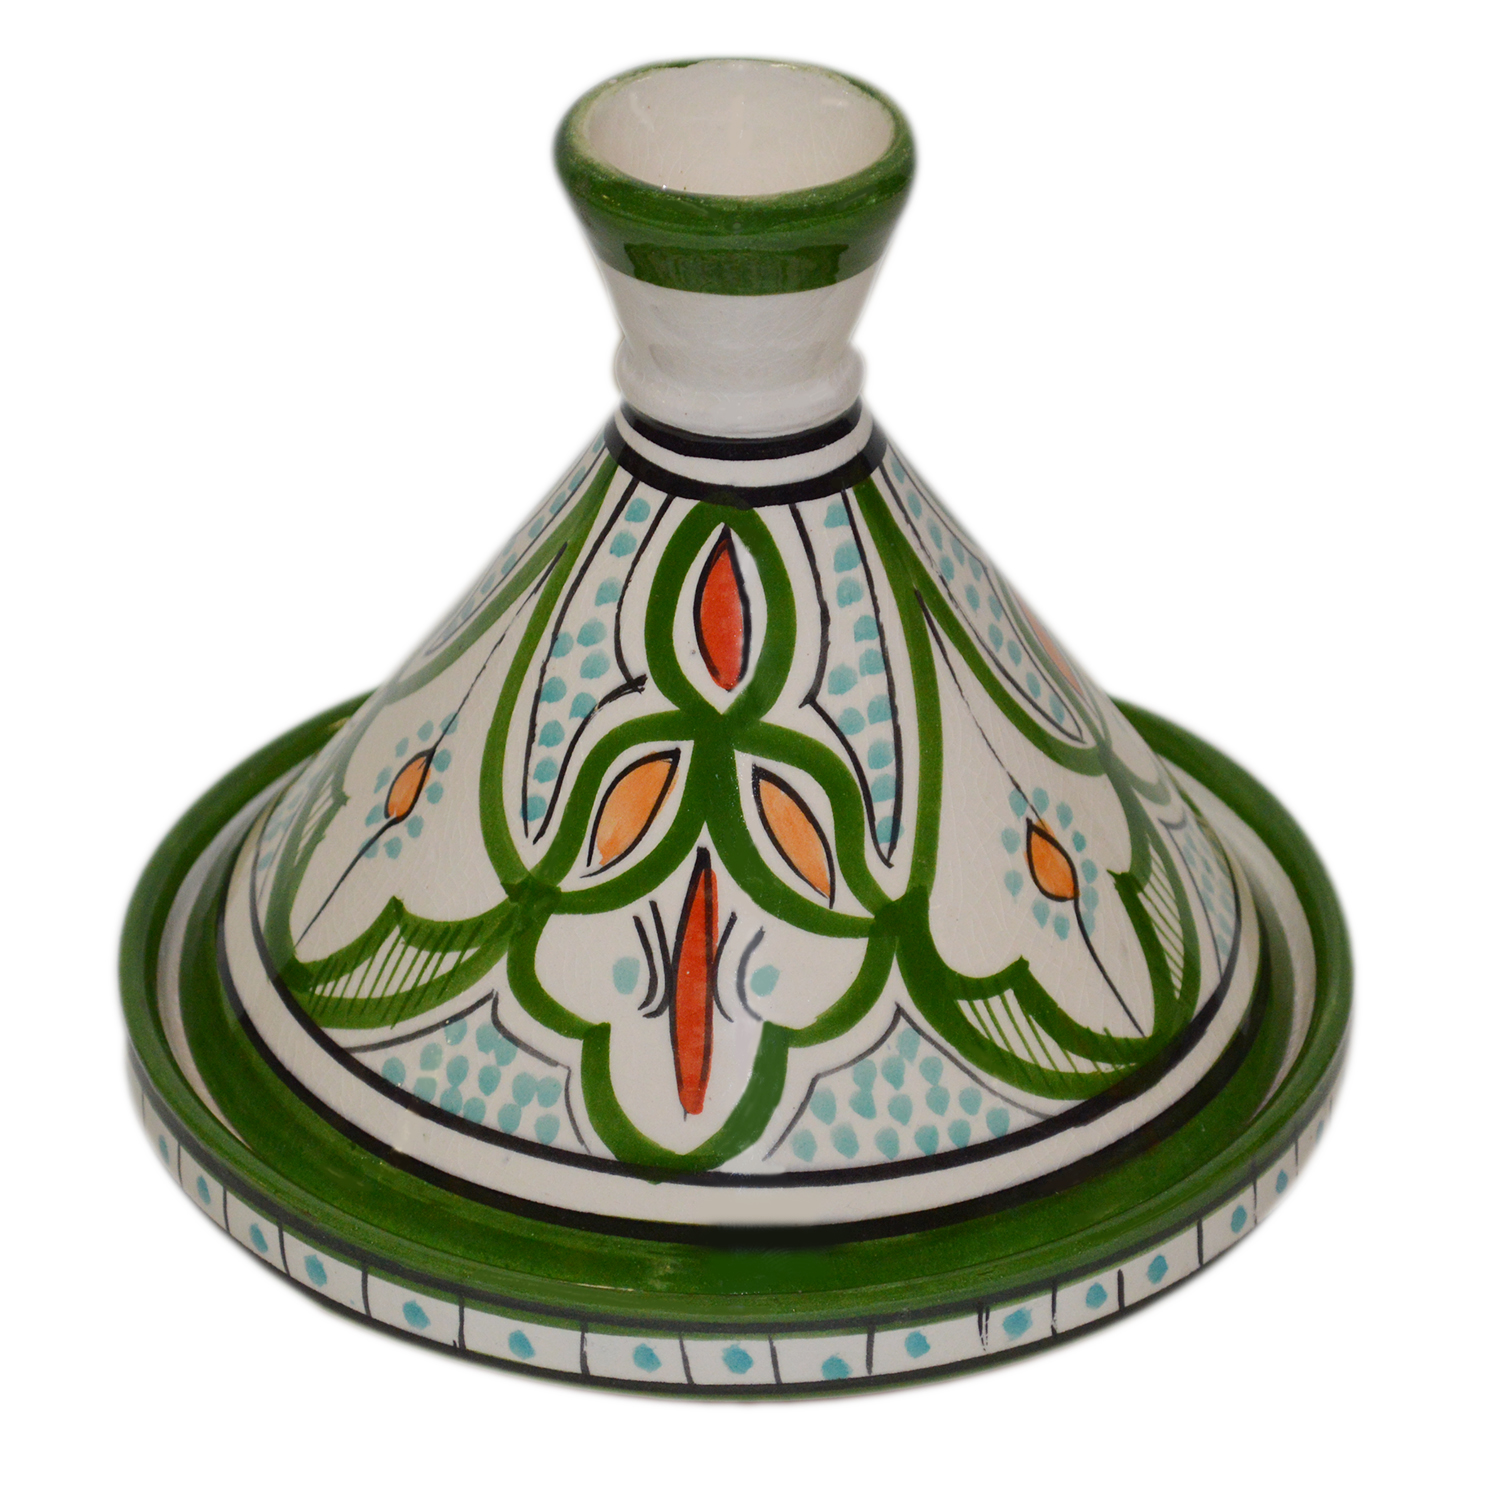 6 inches X-small Tagine